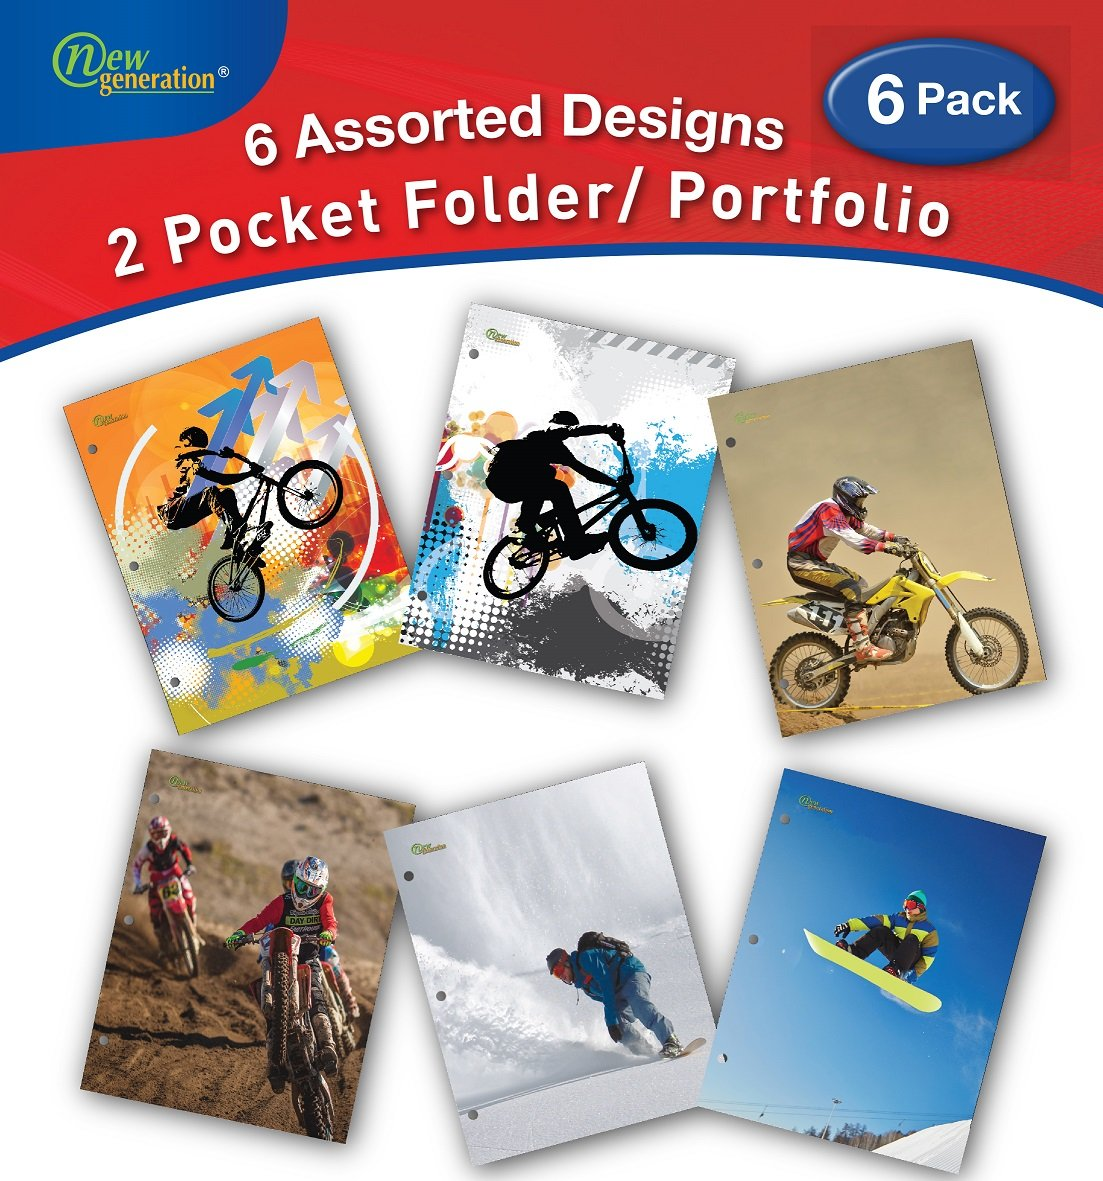 New Generation - EXTREME ZONE - 2 Pocket Folders/Portfolio 6 PACK Letter Size with 3 Hole Punch - Shine Your School Days with Great Fashion Folders. (6 PACK FOLDERS)